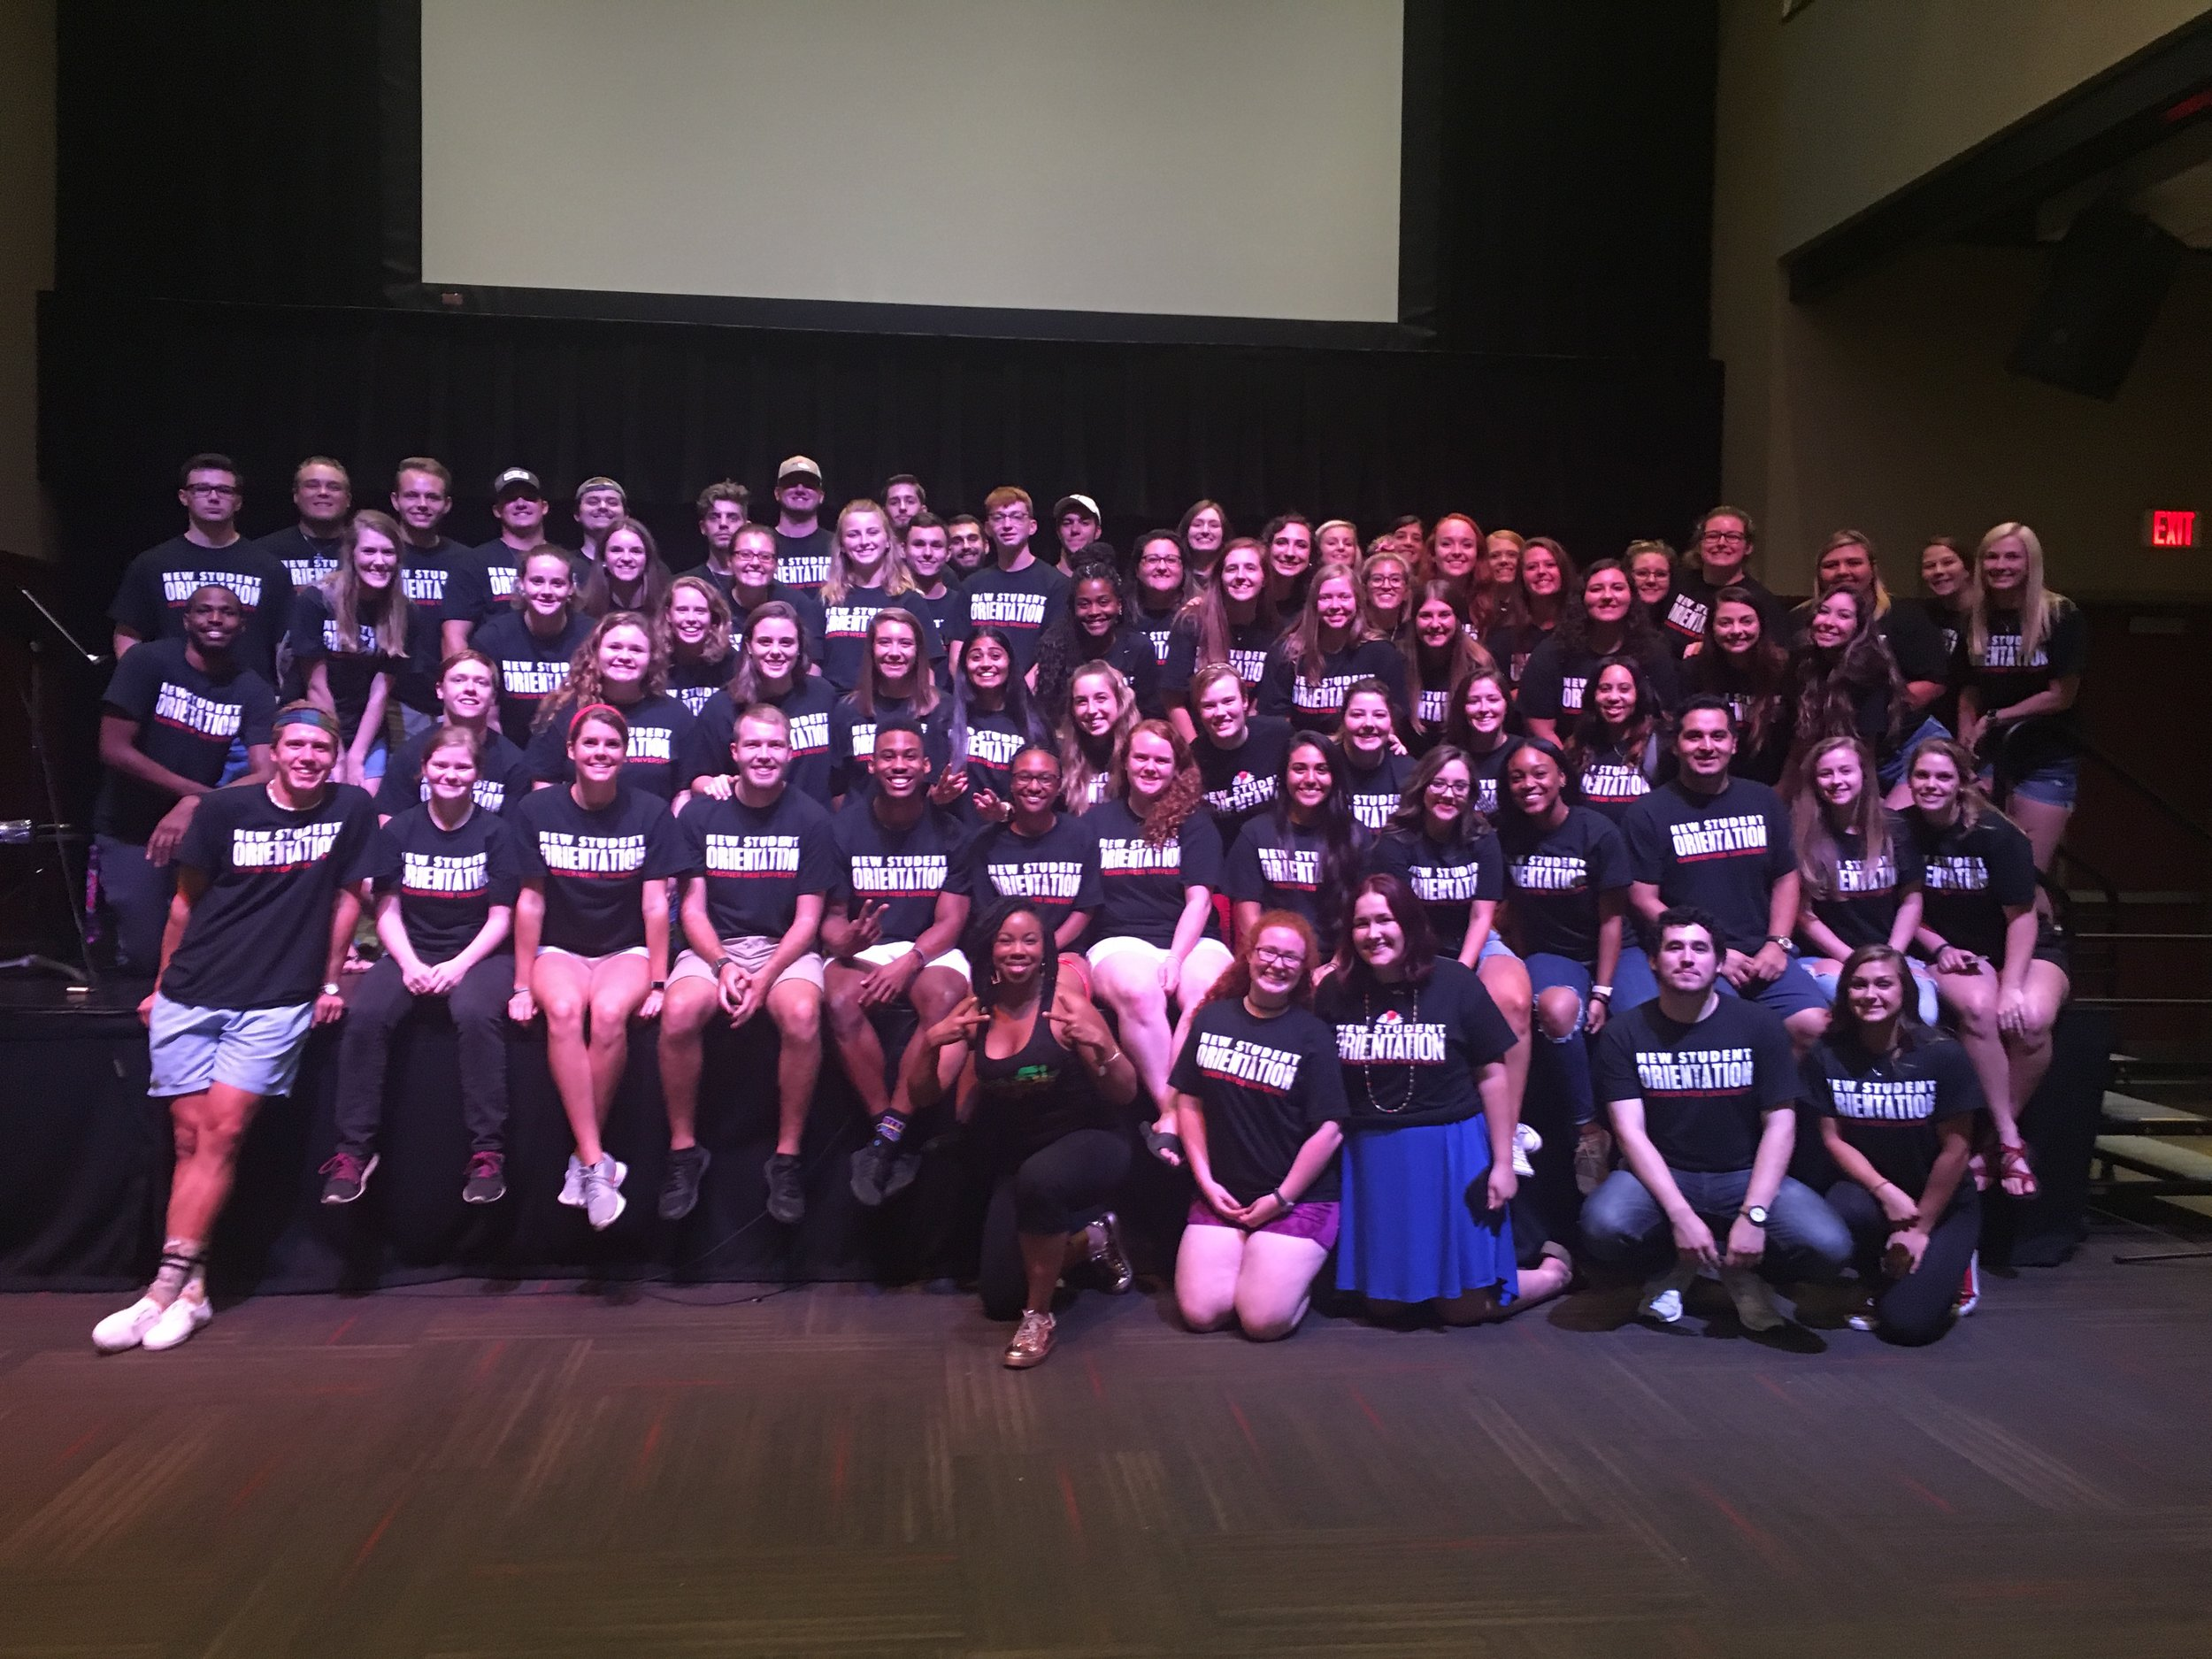 The group of big brothers, big sisters, and peer leaders during Freshman Orientation 2018.